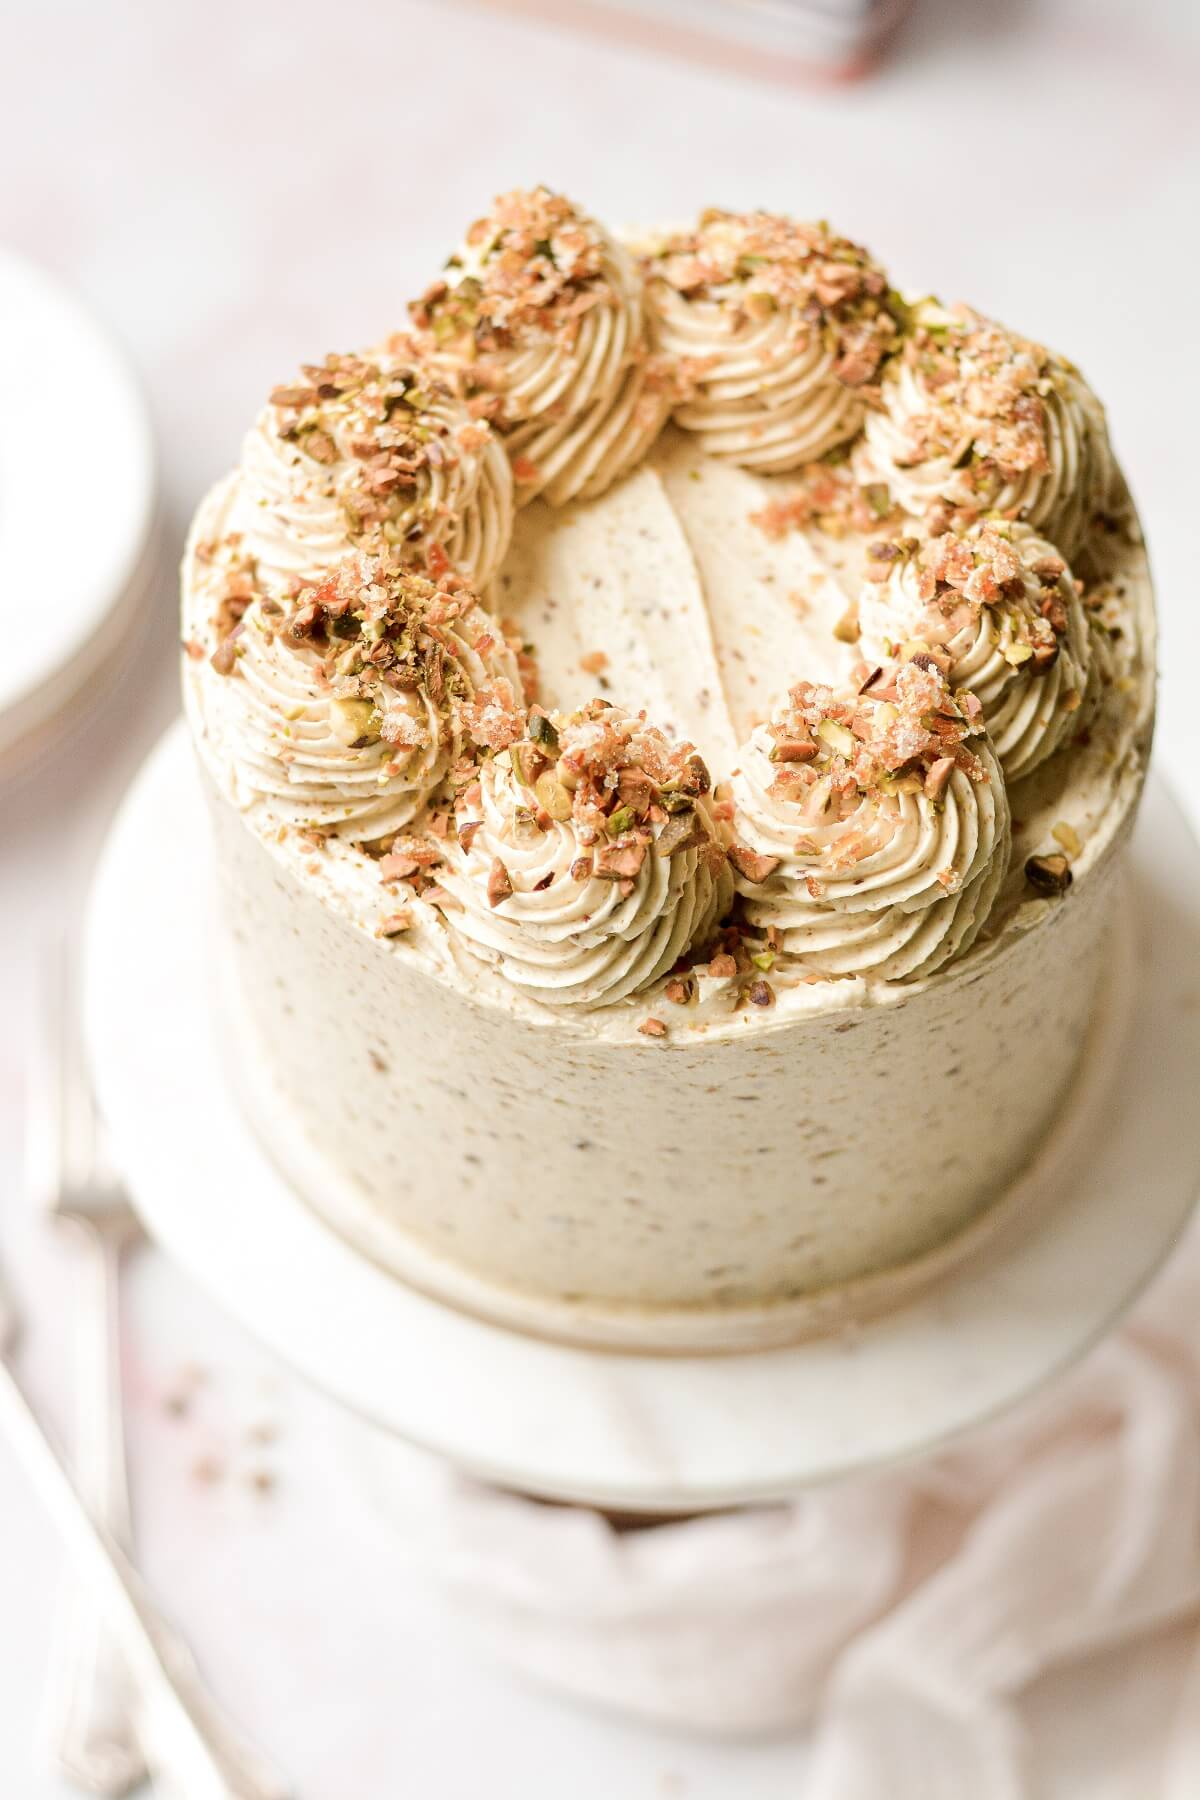 Orange pistachio layer cake, topped with swirls of buttercream, crushed pistachios and candied orange peel.